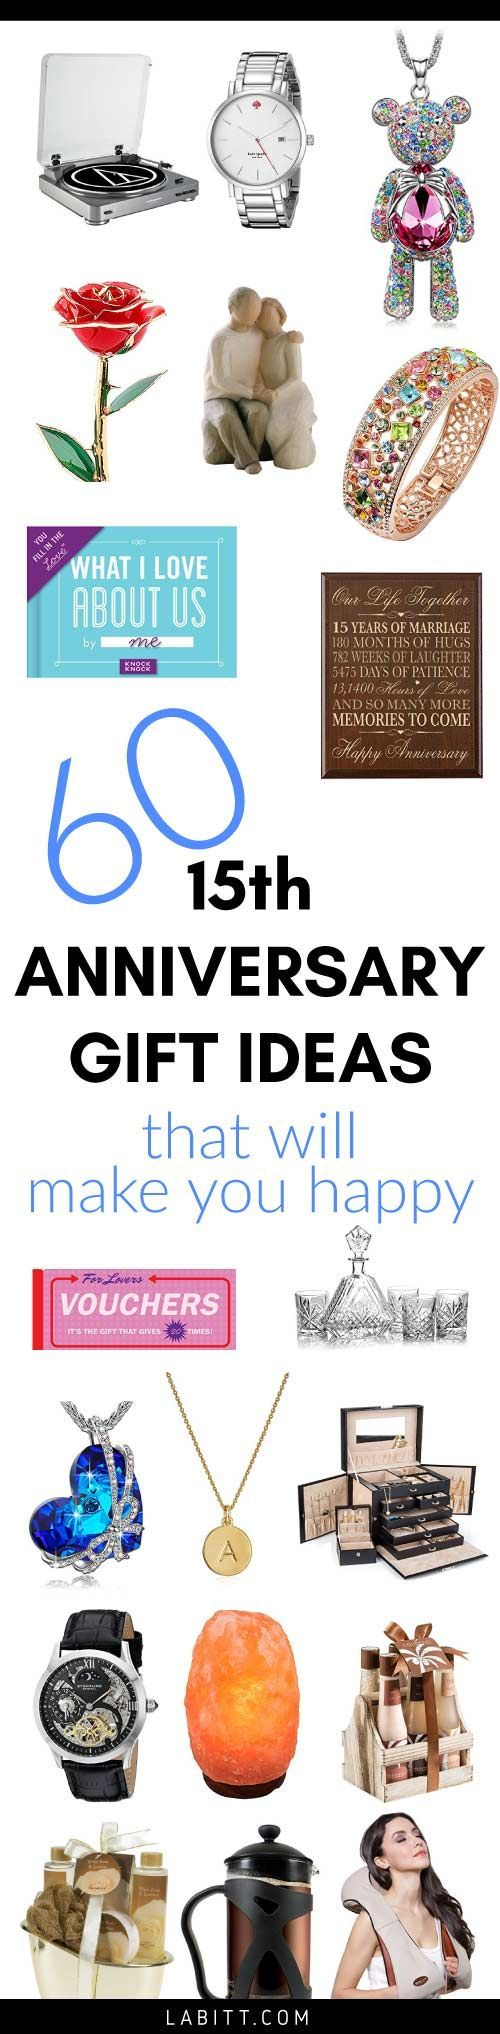 15th Wedding Anniversary Gift Ideas for Her 15th wedding